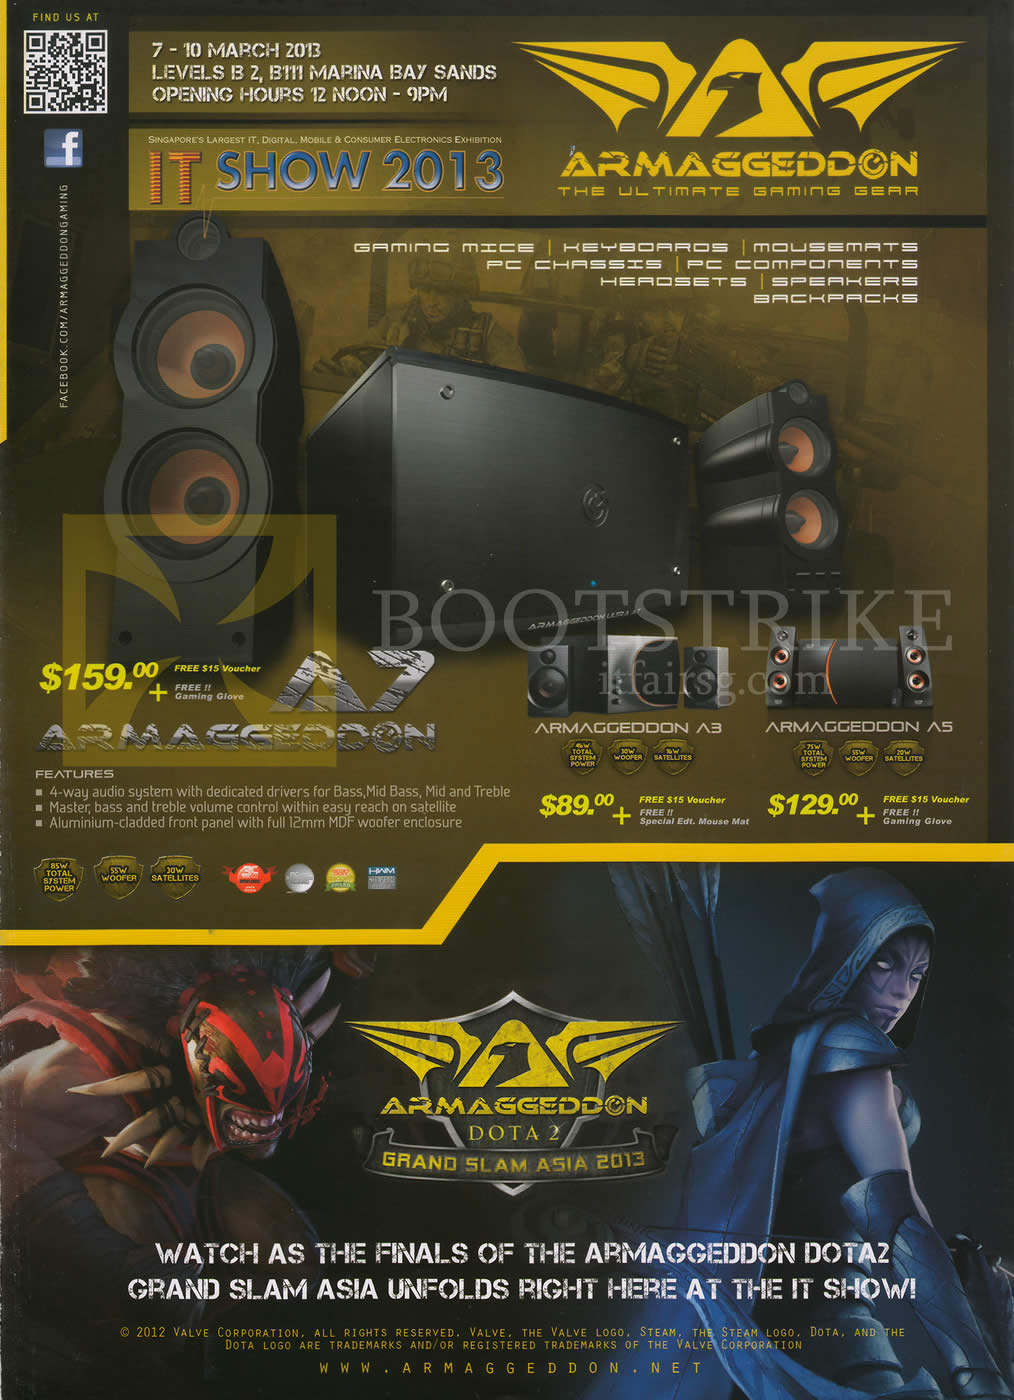 IT SHOW 2013 price list image brochure of Leap Frog Armaggeddon Speakers A7, A3, A5, Dota2 Finals